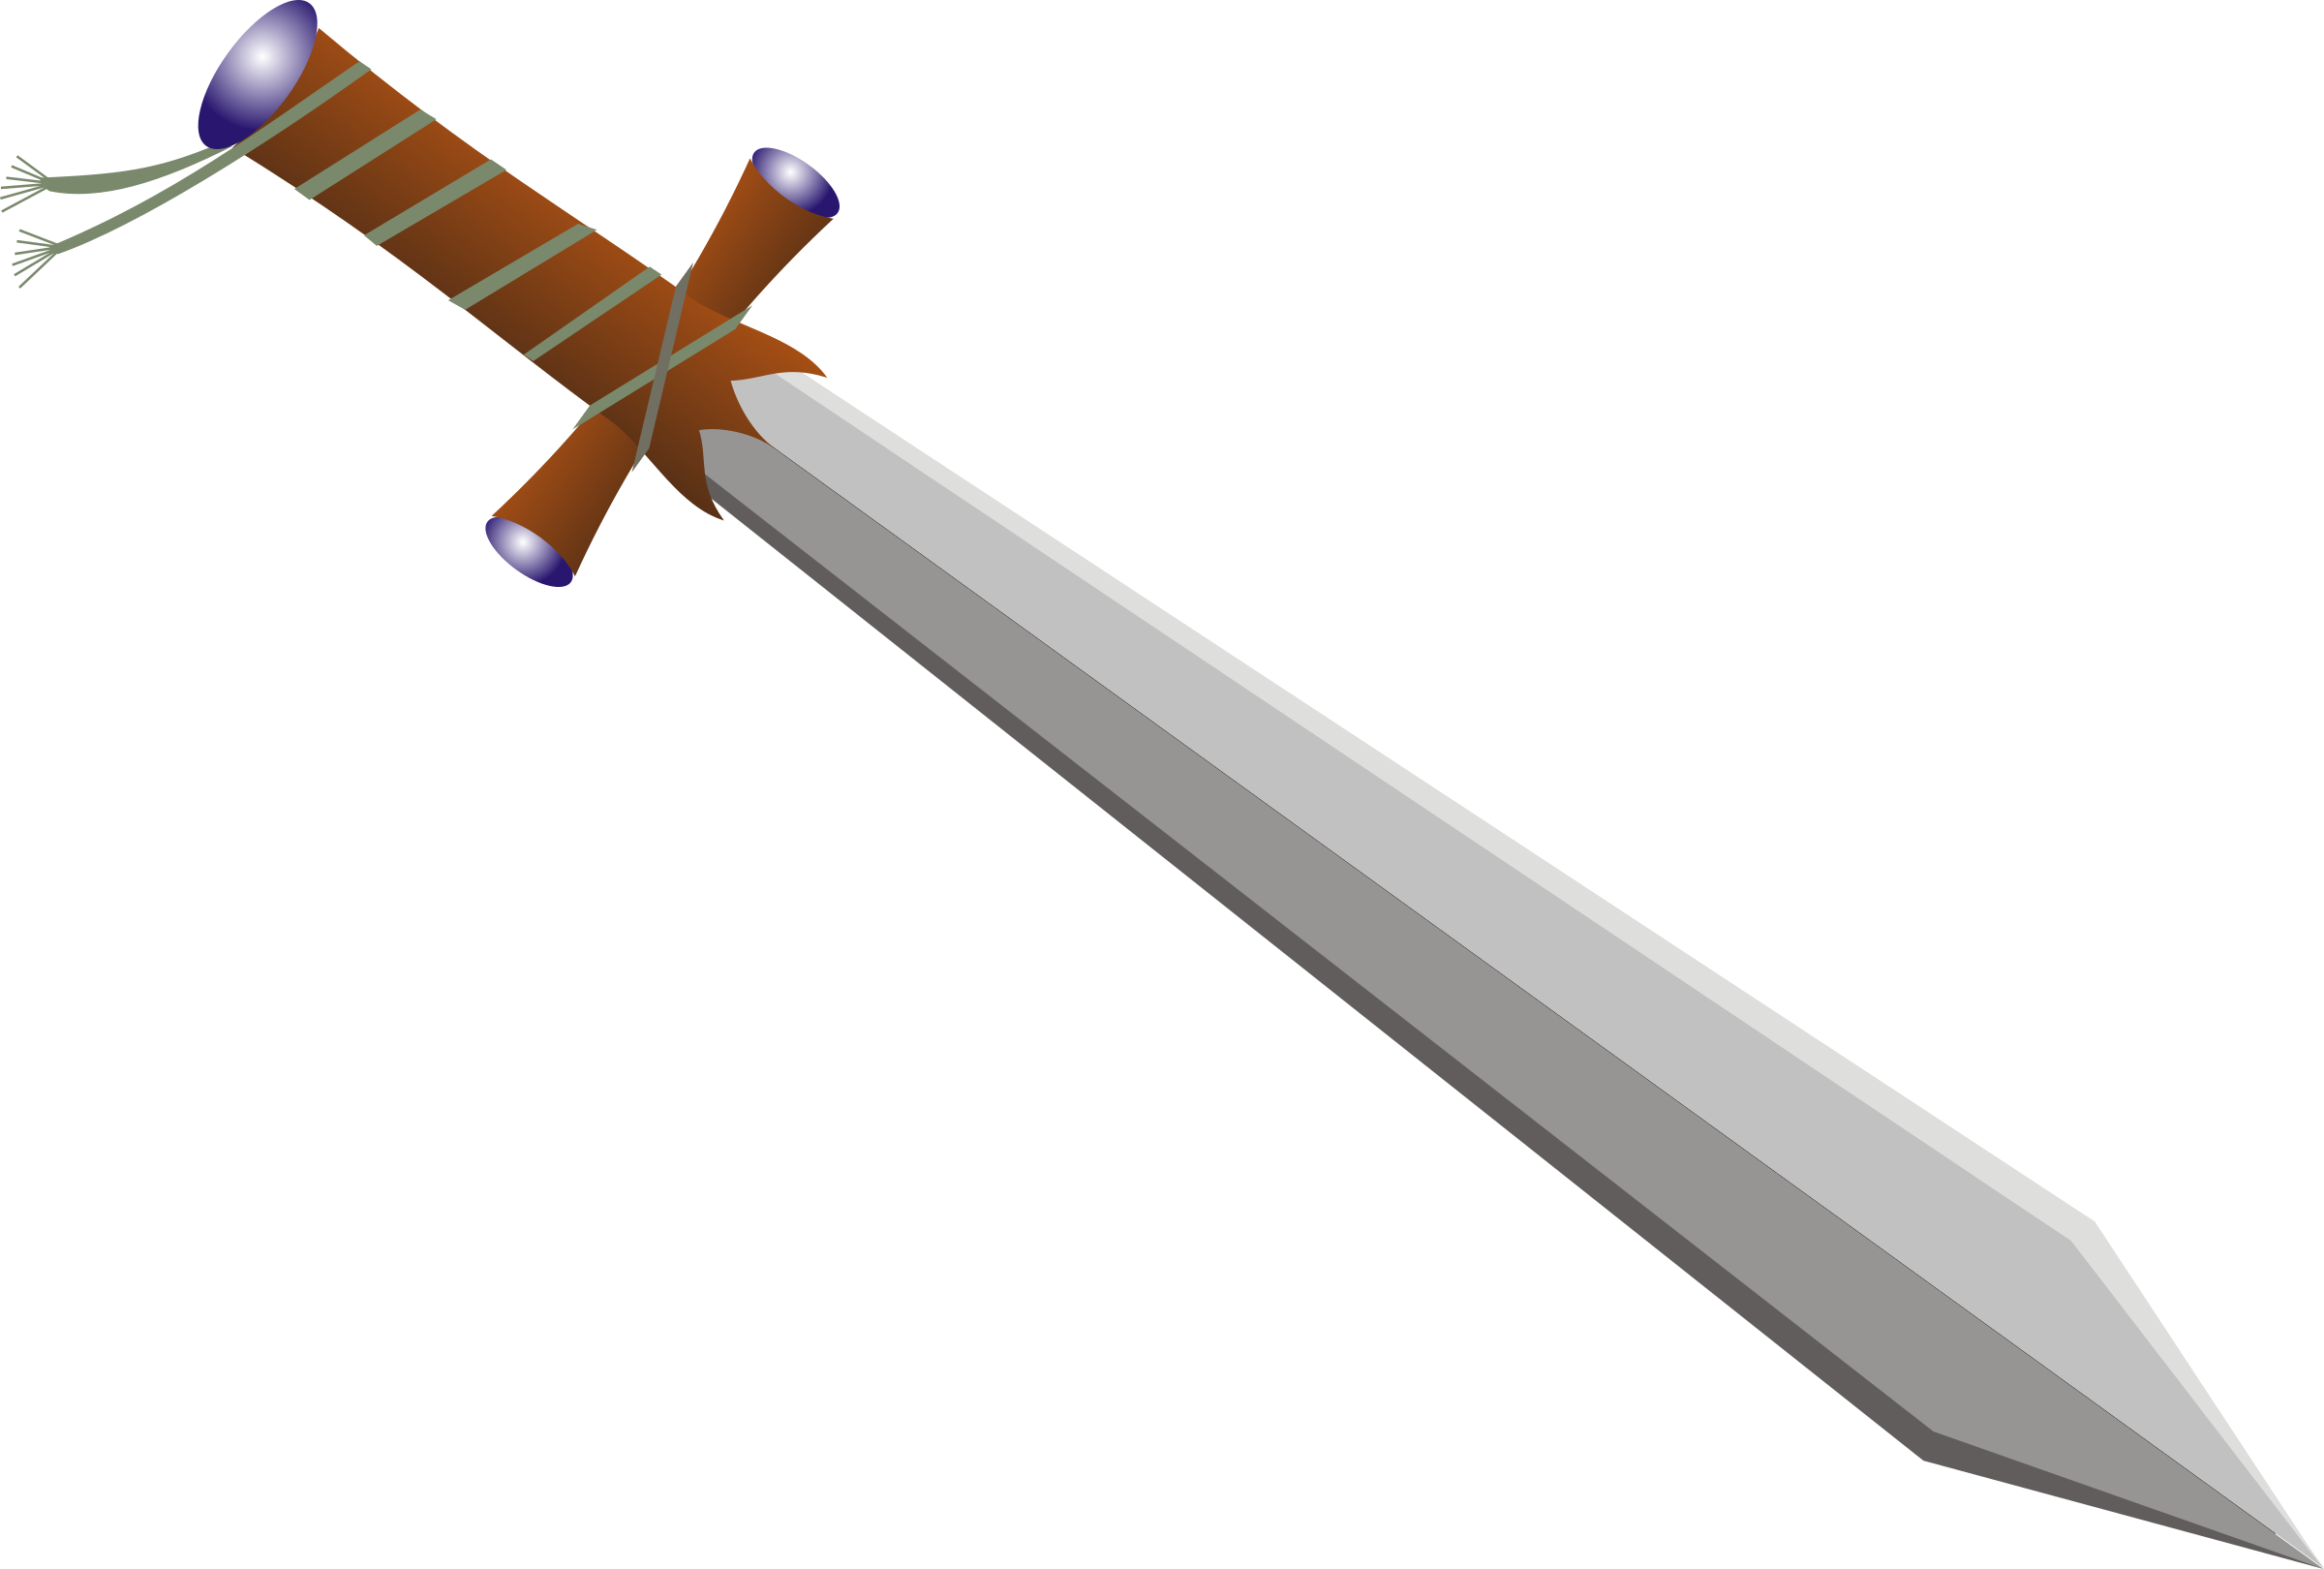 Sword Dagger Scabbard Openclipart Image.